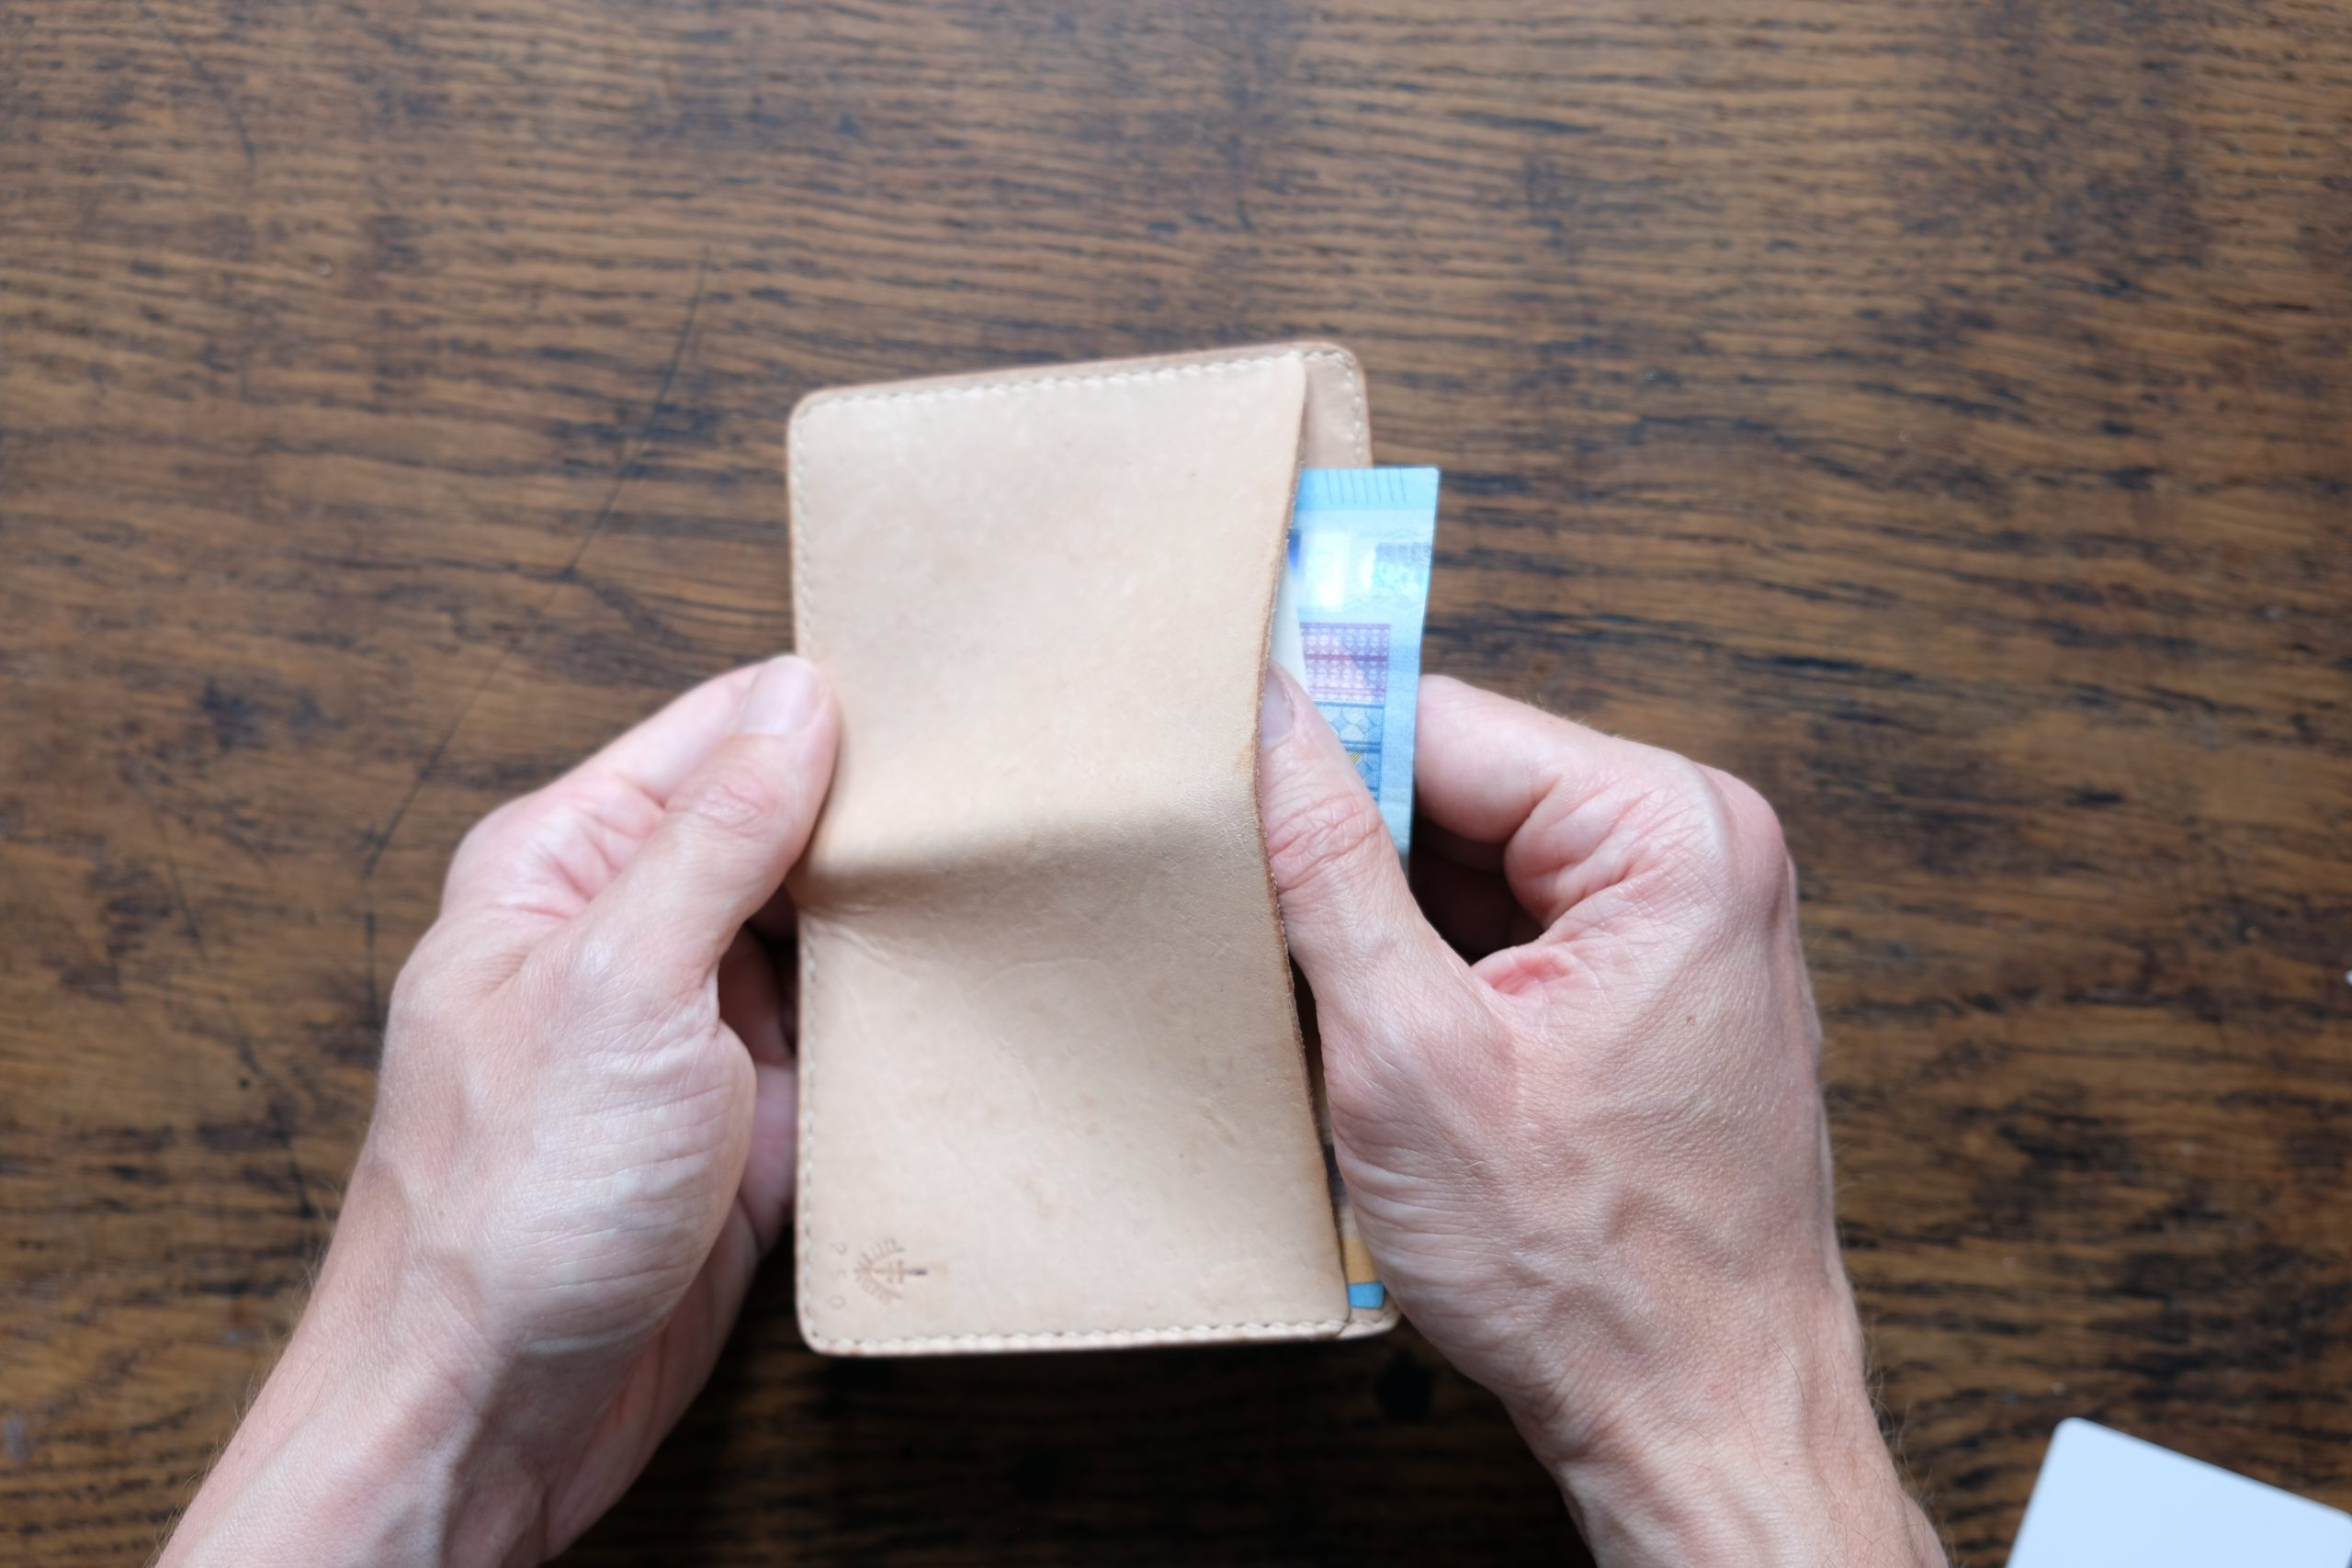 lerif designs small bifold leather wallet in natural on wood background pulling cash